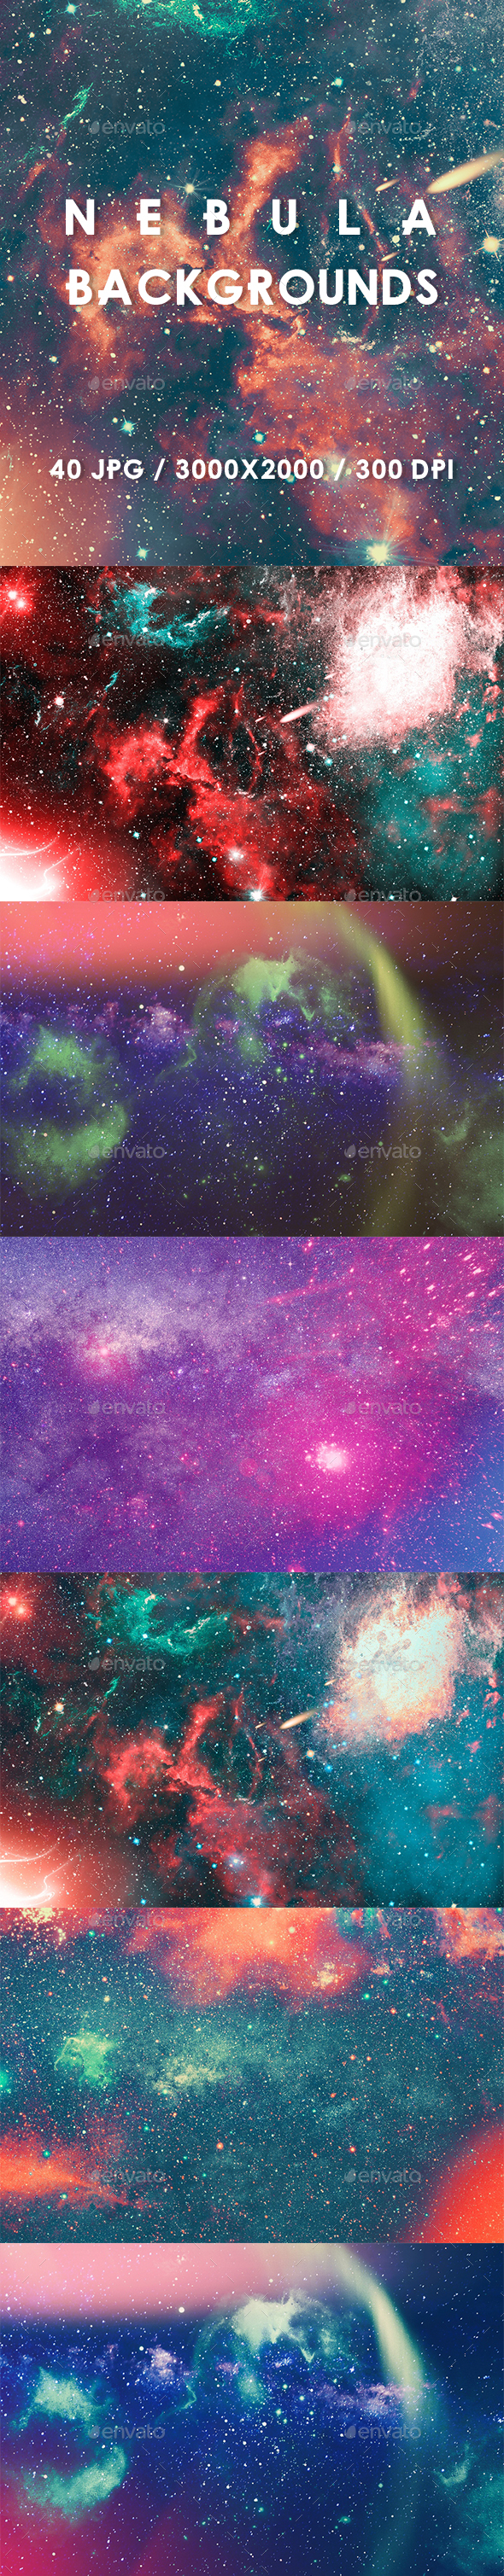 40 Nebula Backgrounds - Abstract Backgrounds